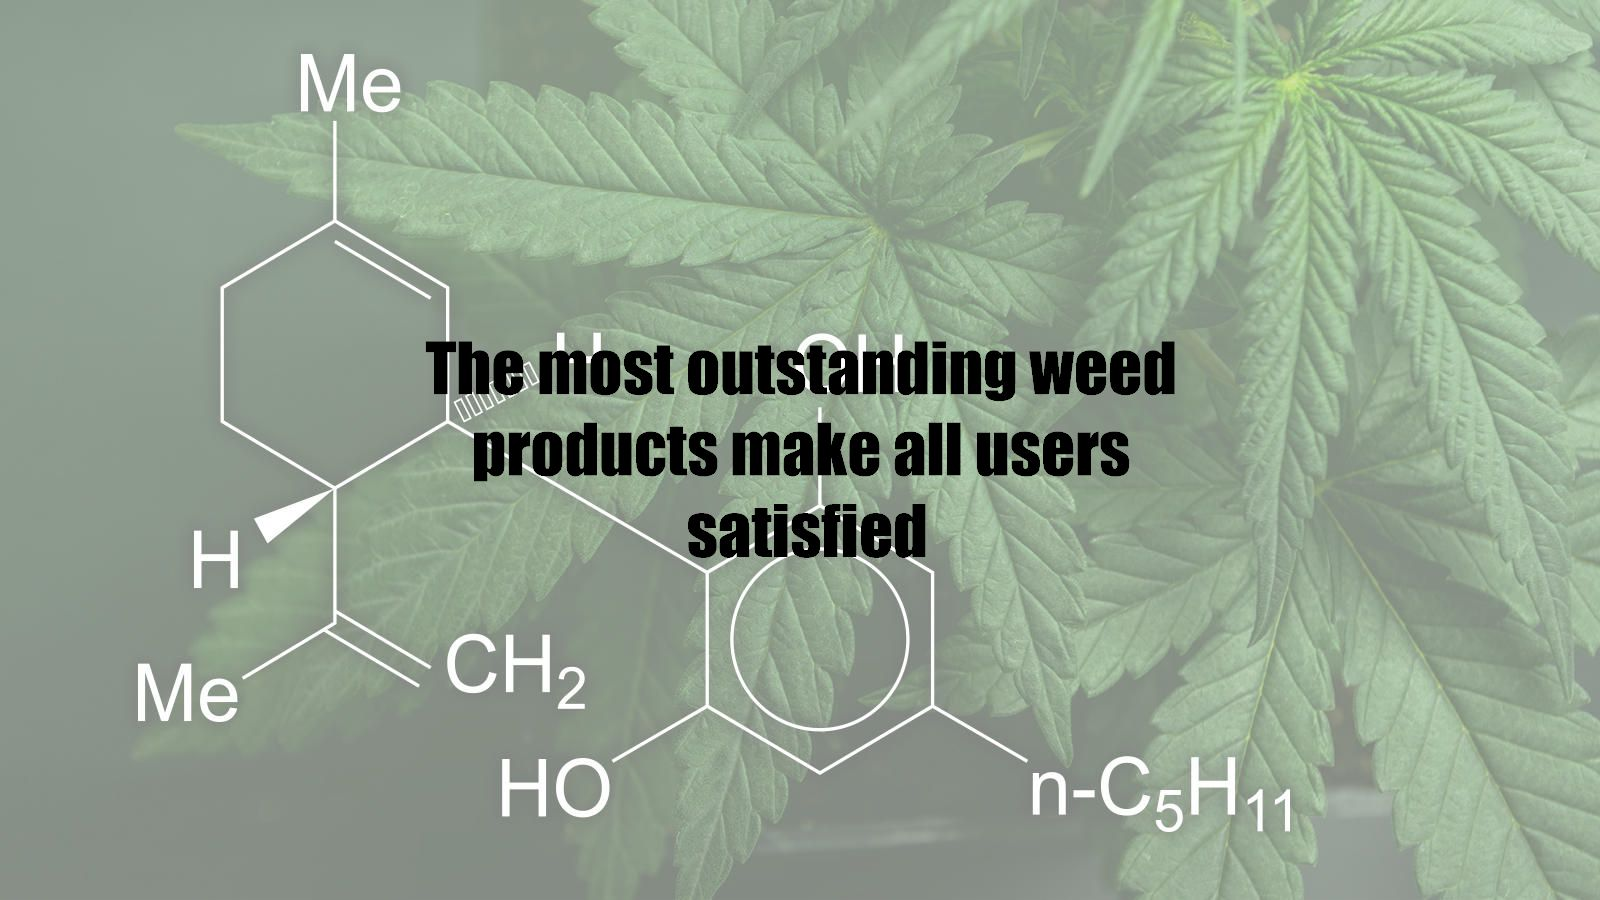 The most outstanding weed products make all users satisfied